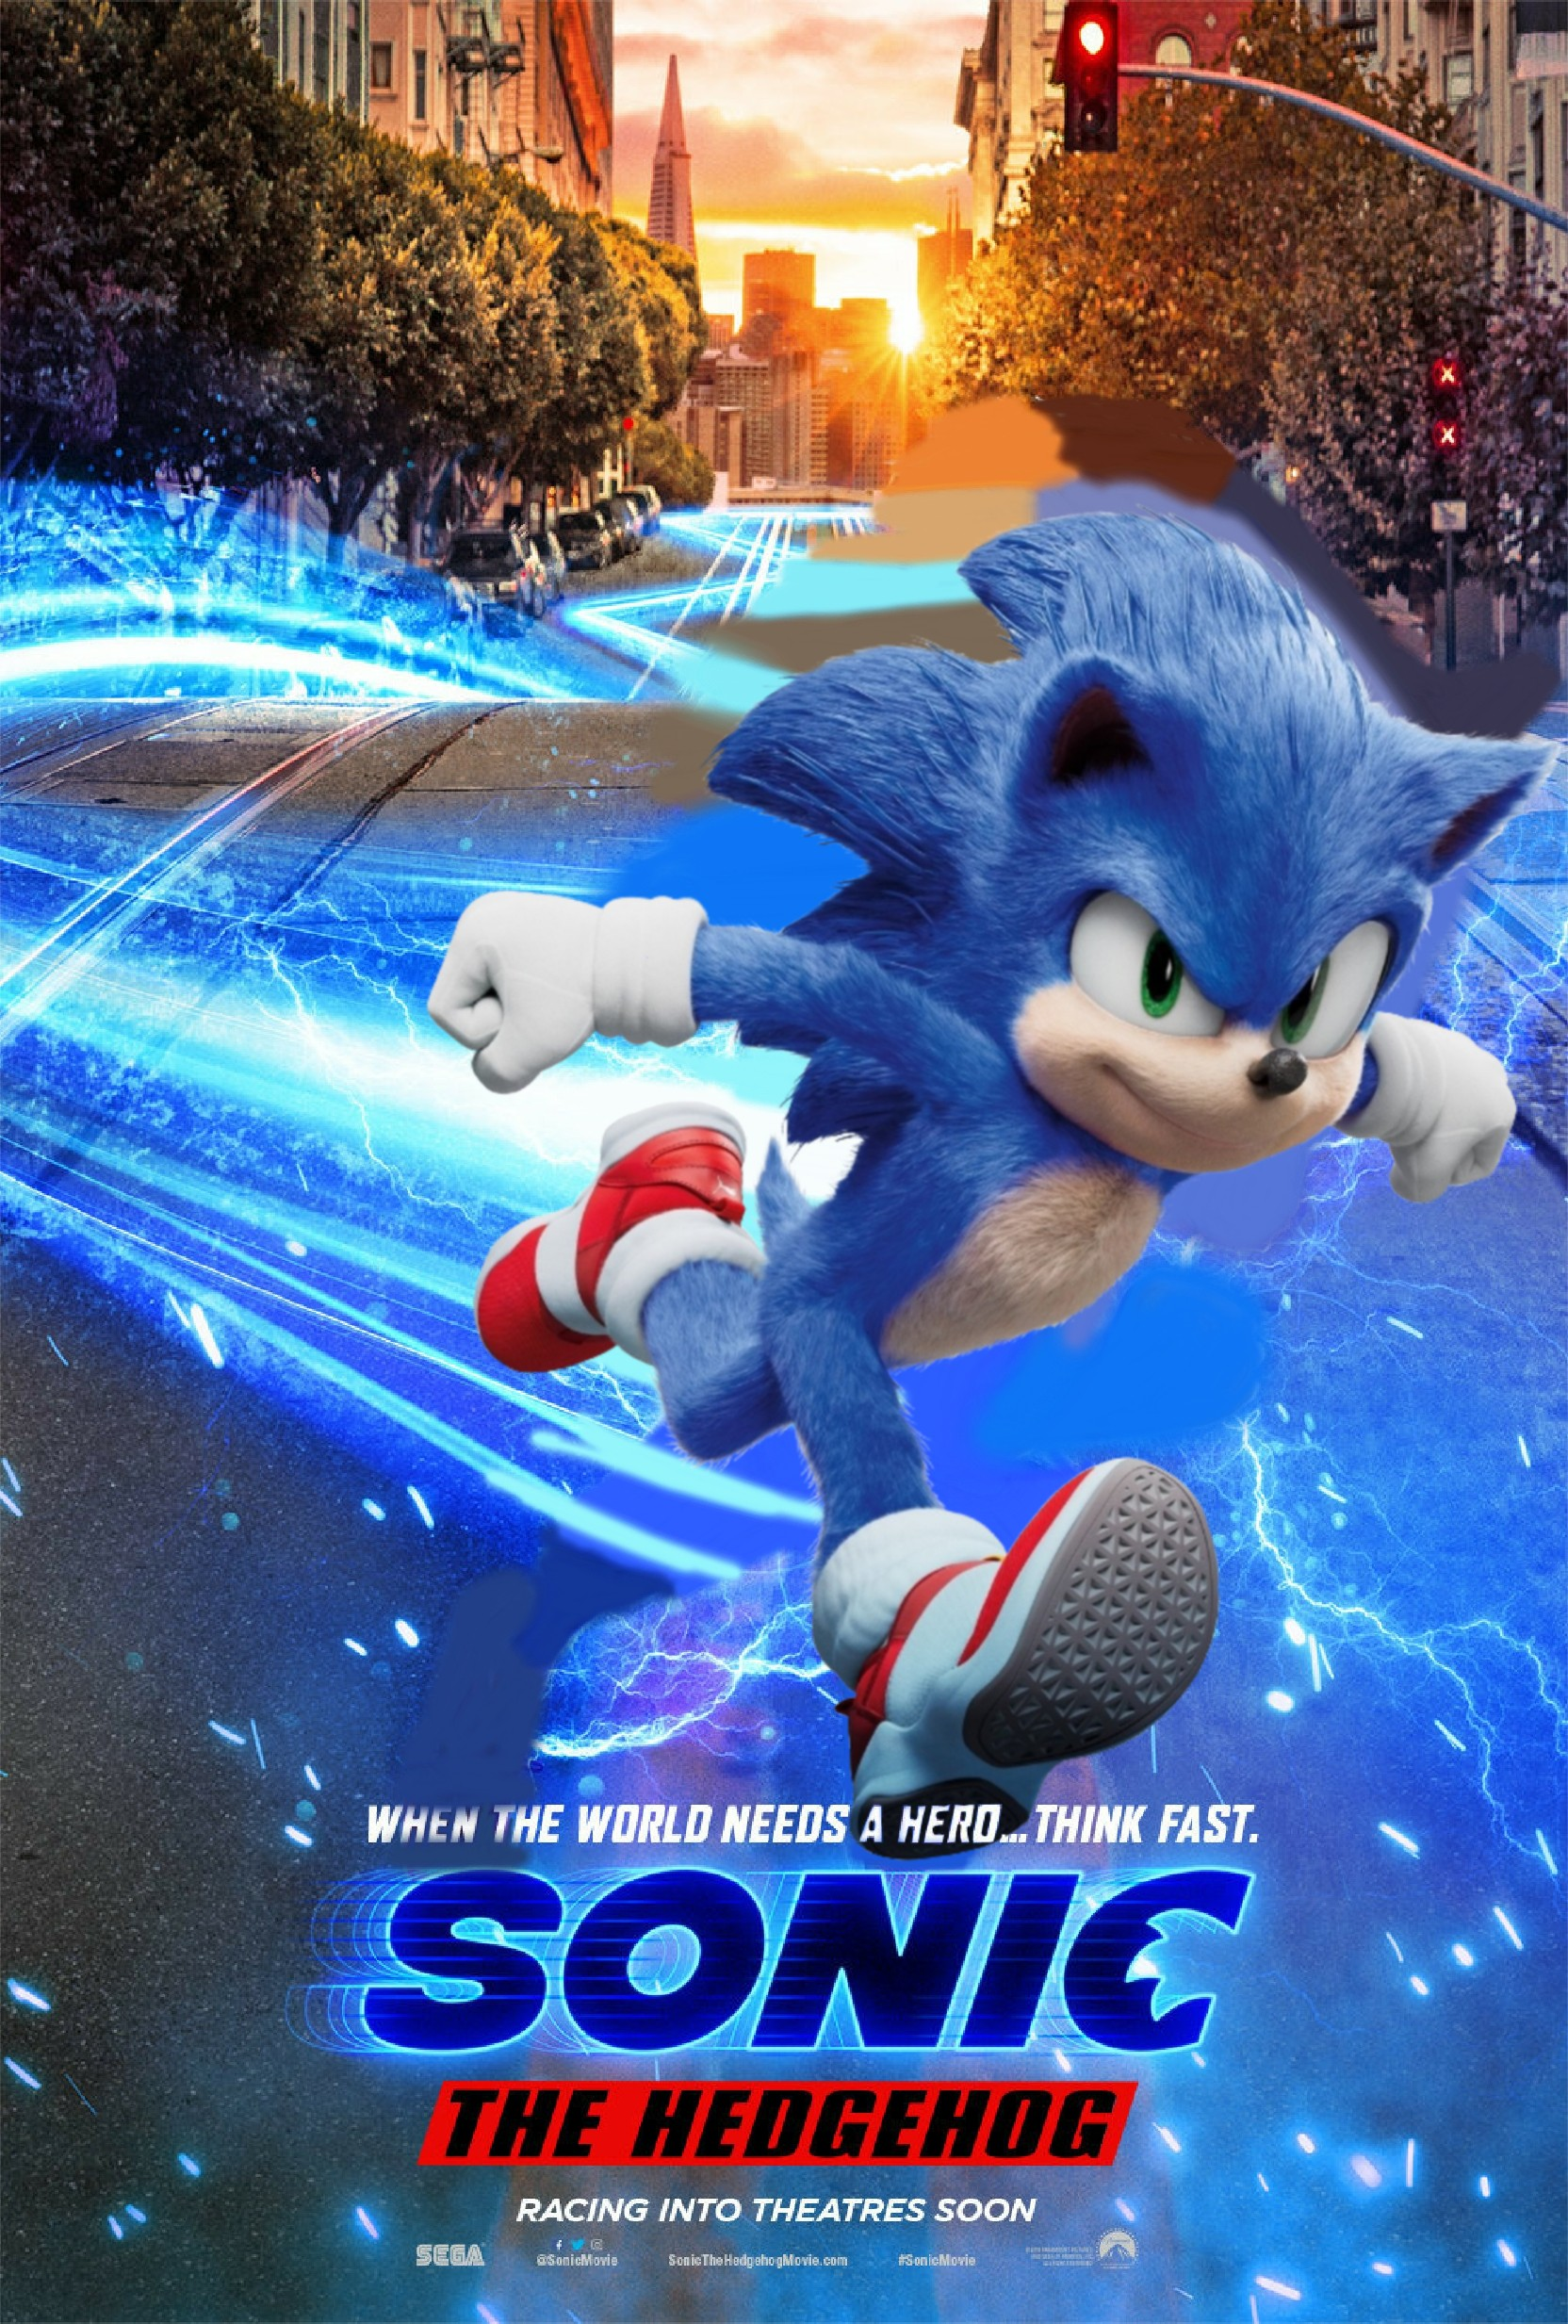 Sonic 2019 Poster With 2020 Ver 3 By Abealy2 On Deviantart